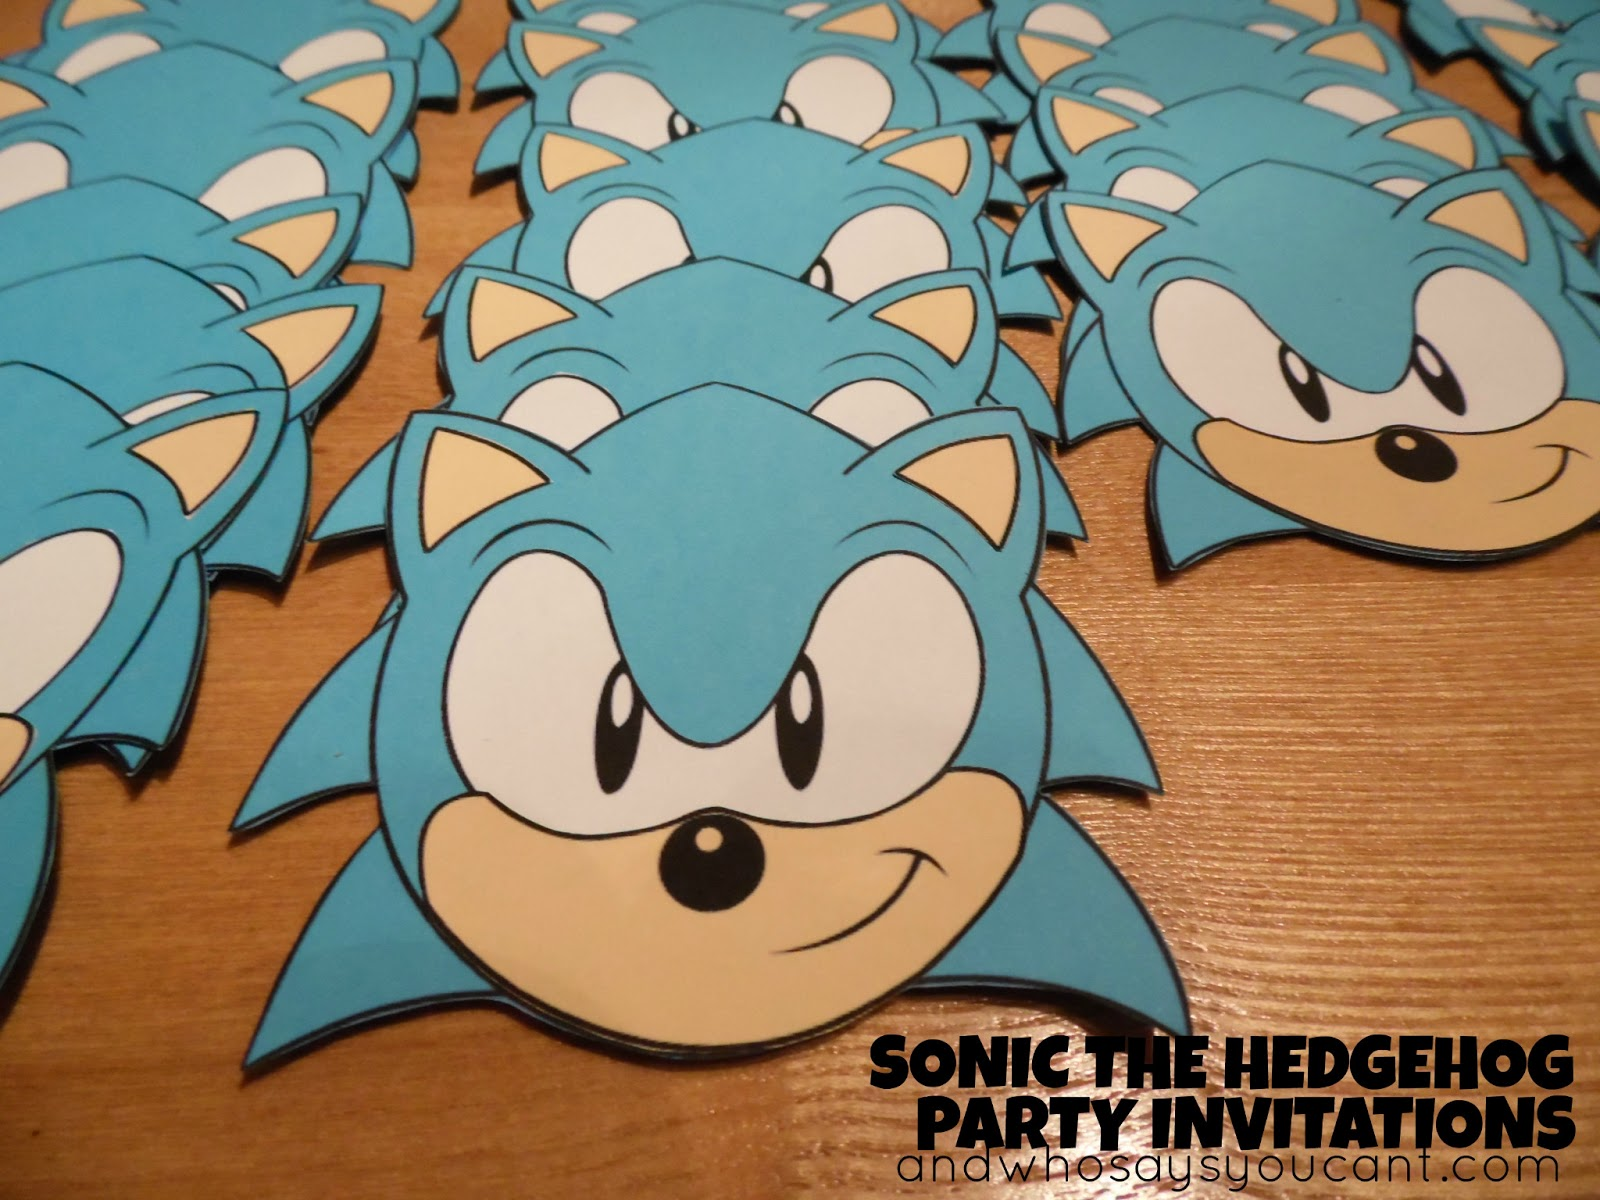 And Who Says You Cant SONIC THE HEDGEHOG BIRTHDAY PARTY INVITATION